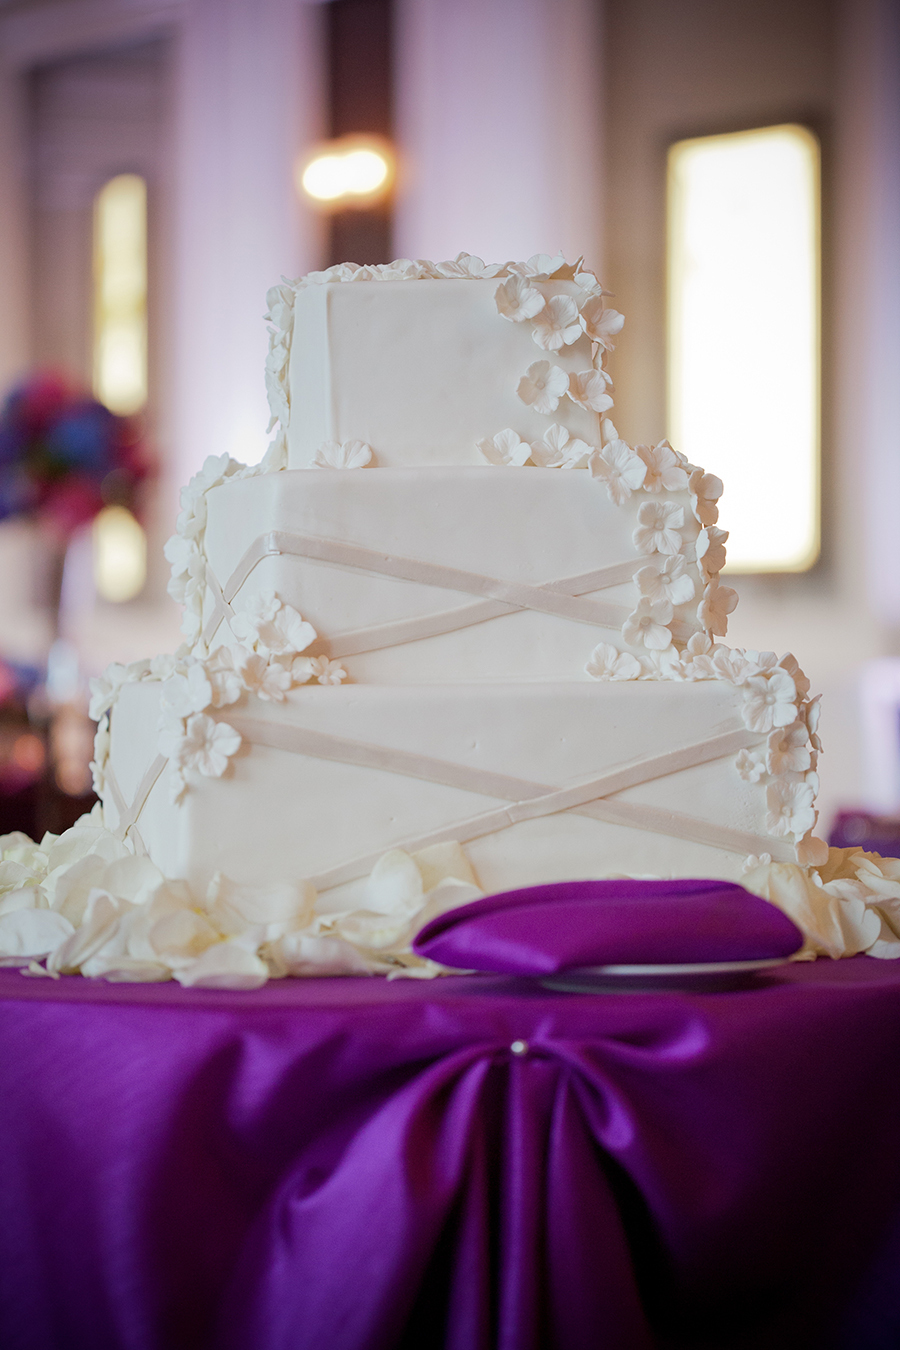 Cakes, white, purple, cake, Fall, Square Wedding Cakes, Square, Wedding, Formal, Michelle marty